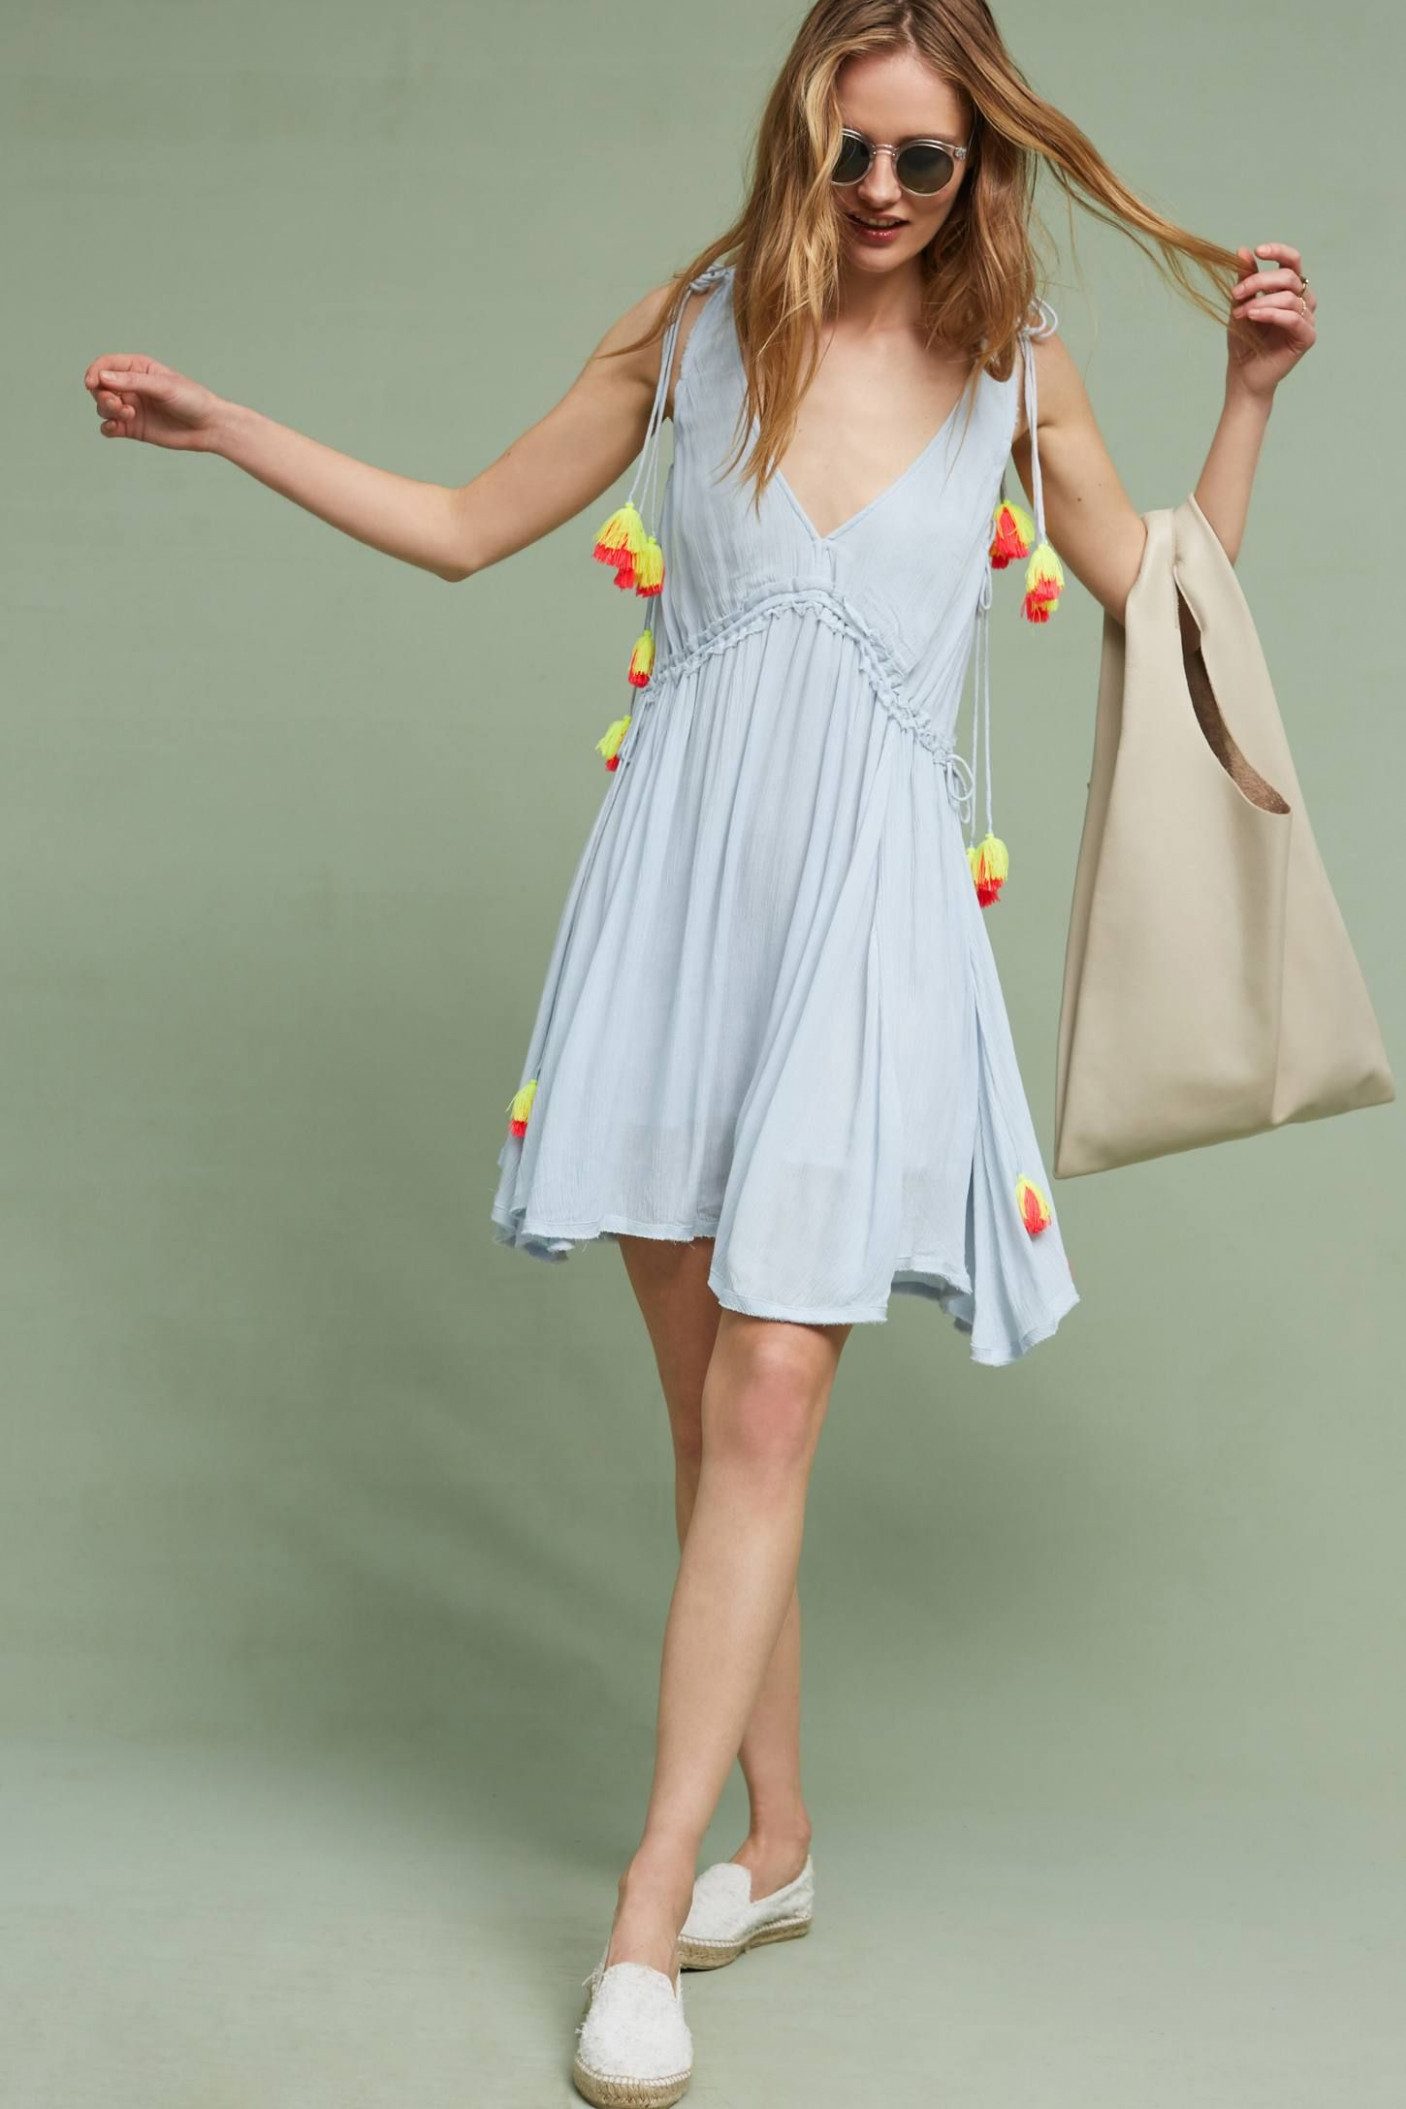 cute summer sundress have a fun day!! fashion, beachwear for sommer kleidung